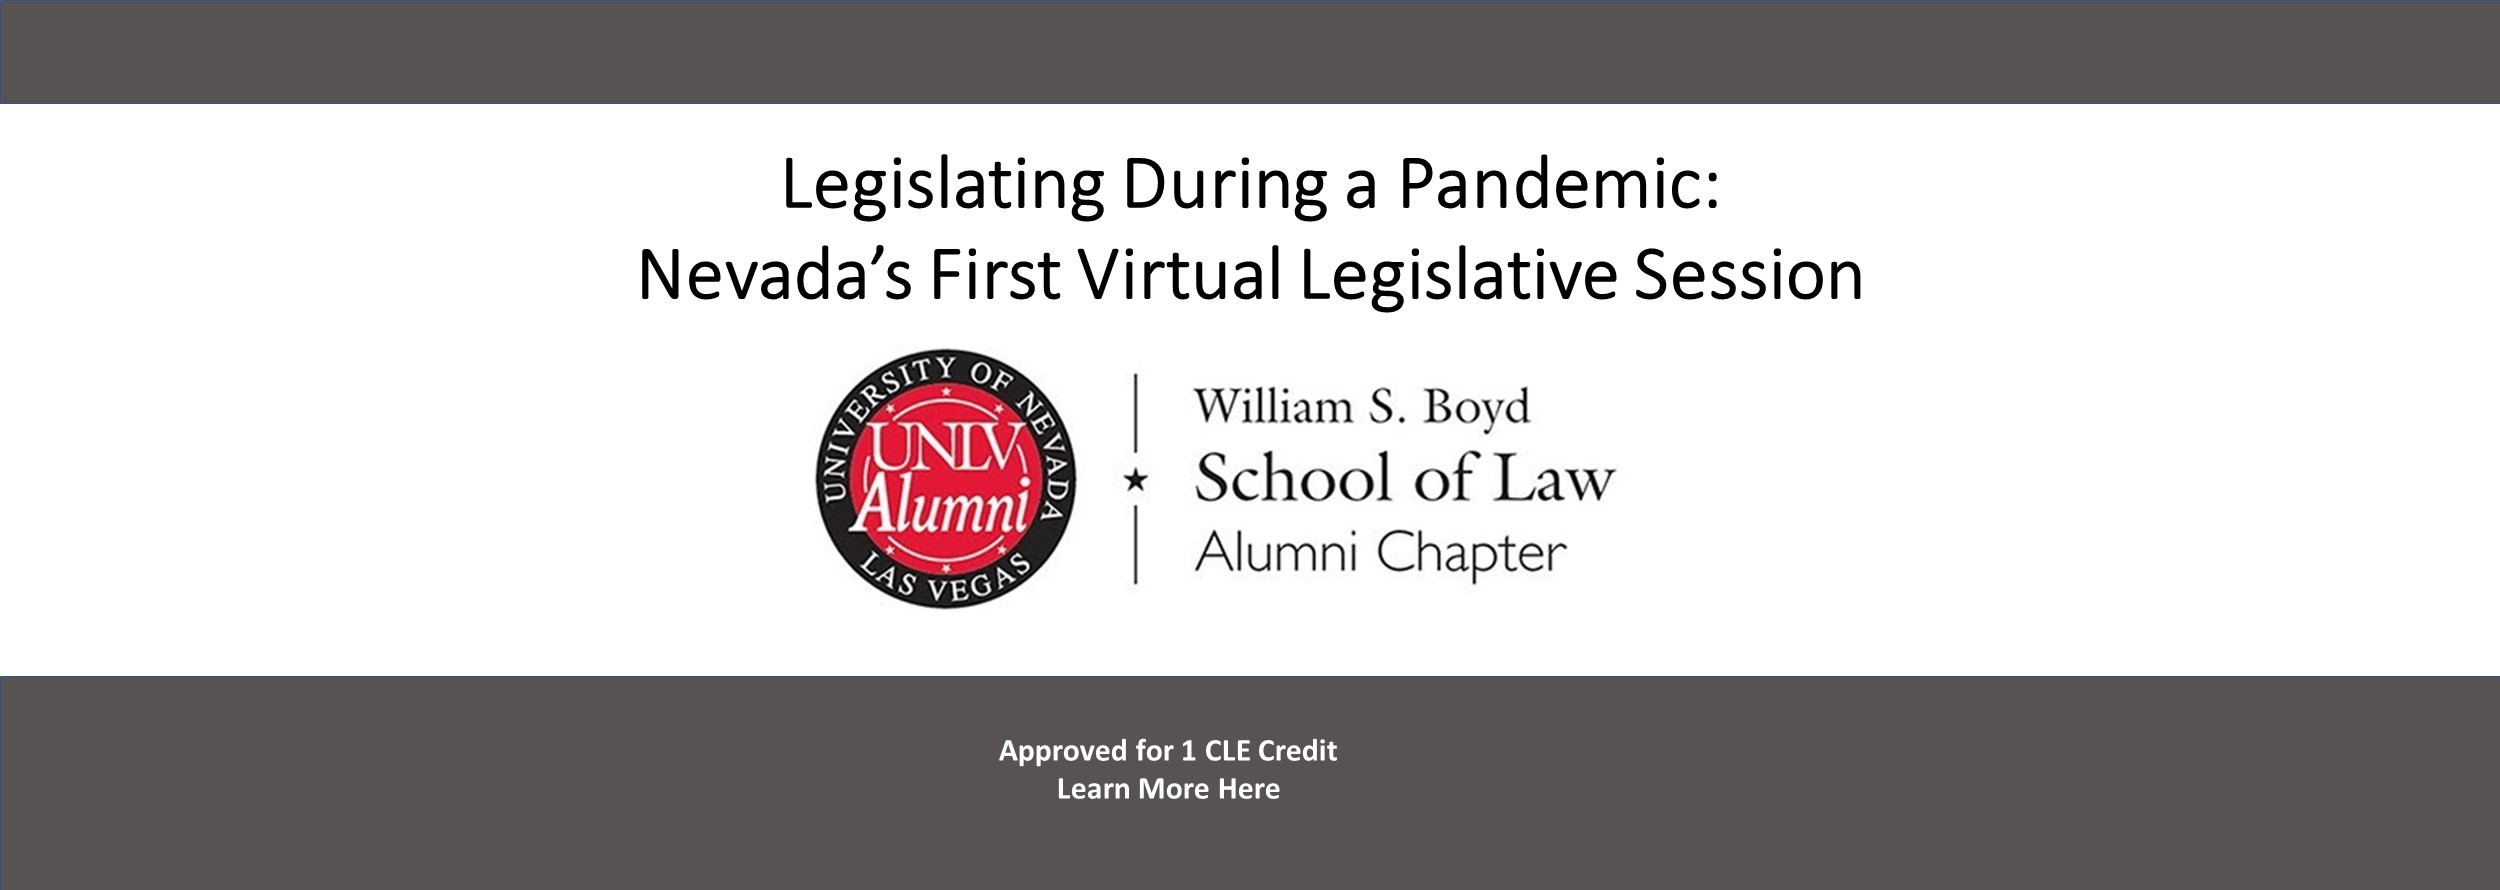 Legislating During a Pandemic: Nevada's First Virtual Legislative - Session Approved for 1 CLE credit